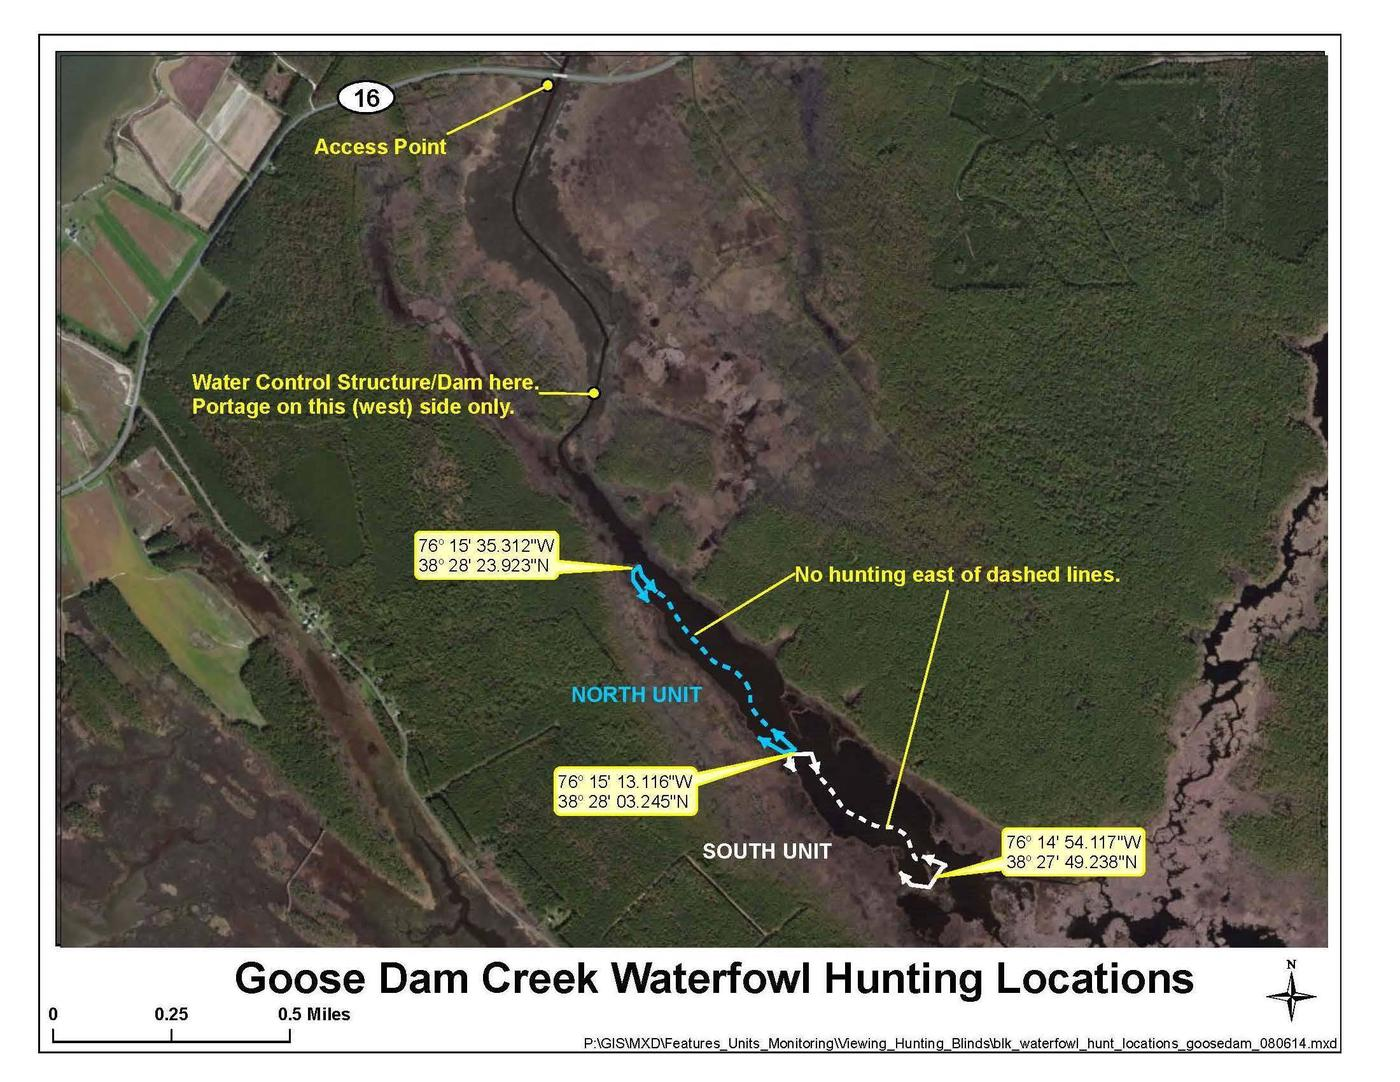 Goose Dam Creek MapImage of the two units within the Goose Dam Creek waterfowl hunt area.